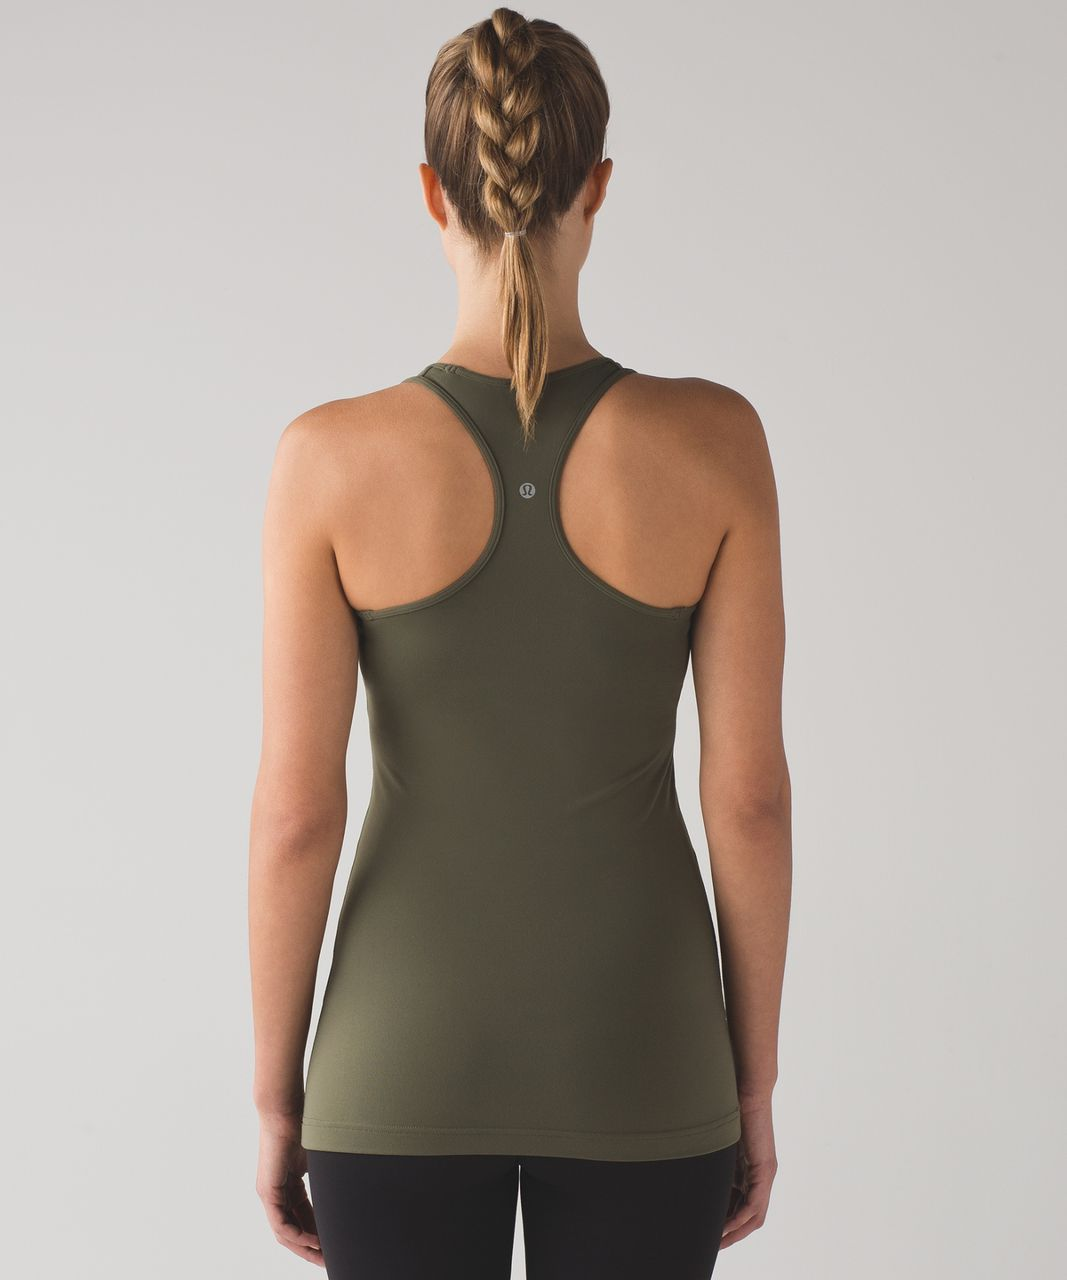 Lululemon Cool Racerback - Fatigue Green